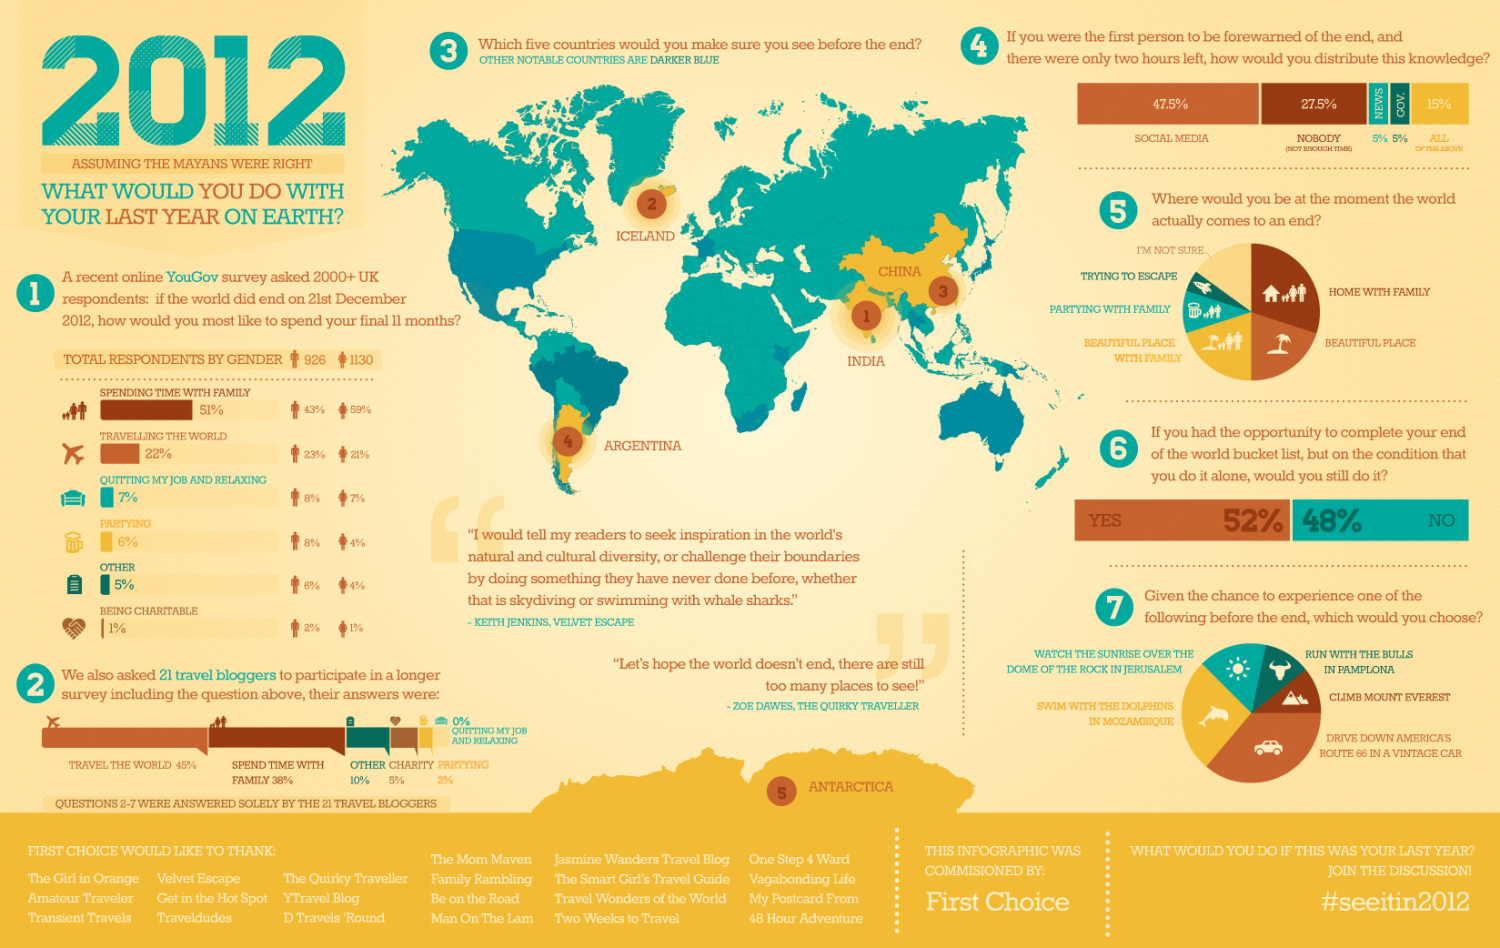 The End of the World Bucket List Infographic